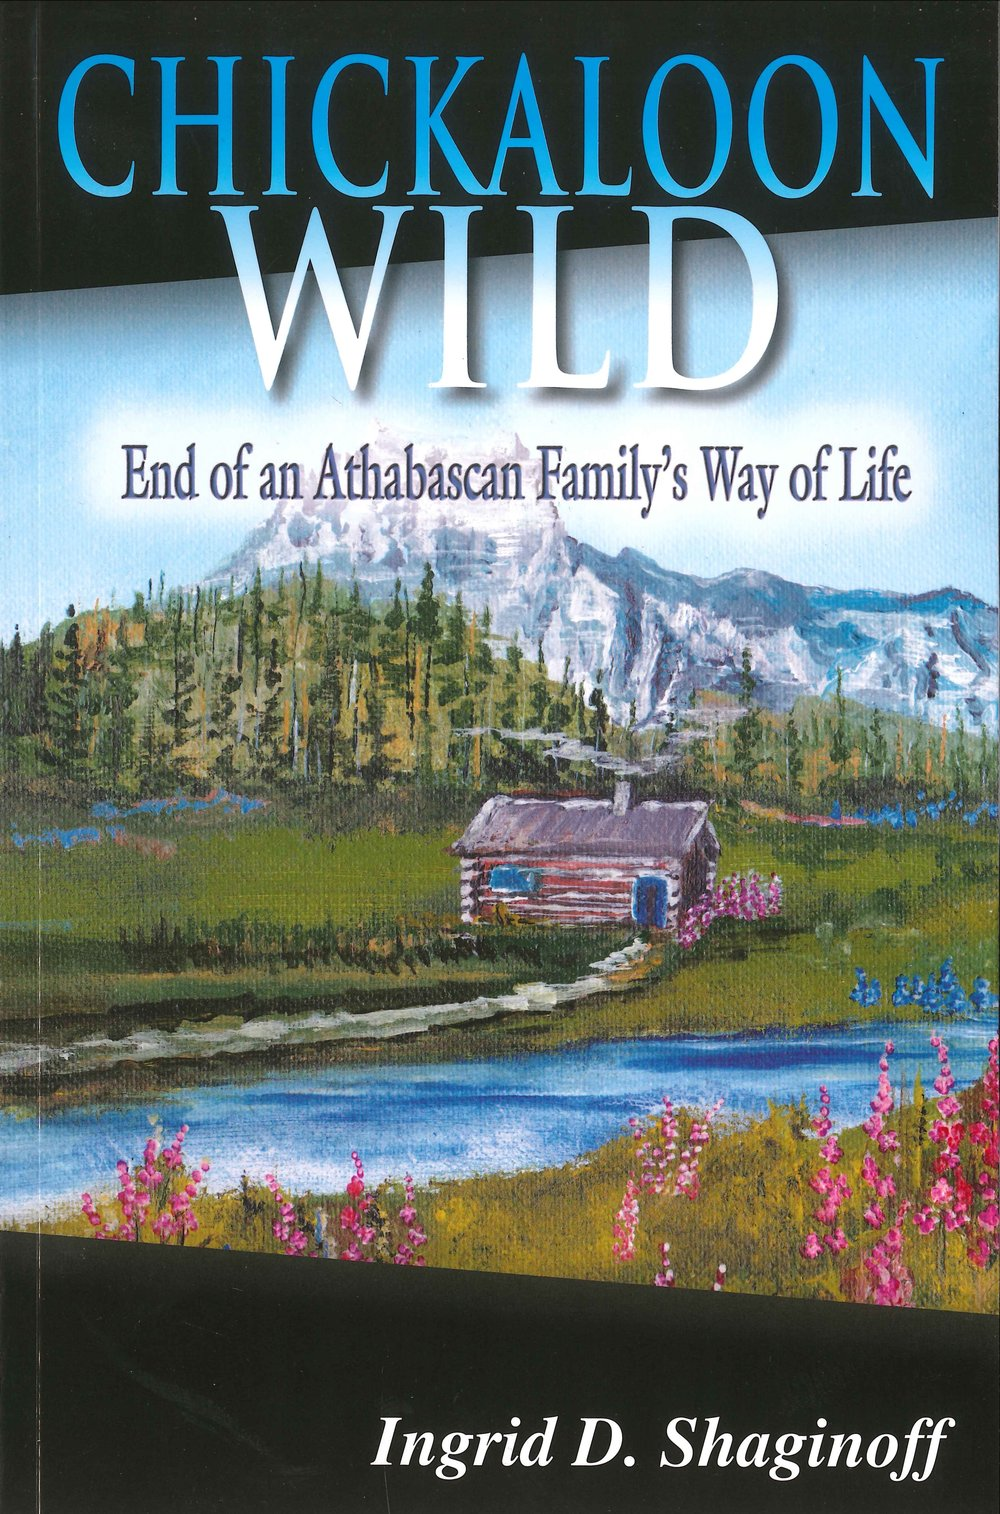 MAS - Chickaloon Wild End Of An Athabascan Family's Way Of Life 1 - Copy.jpg